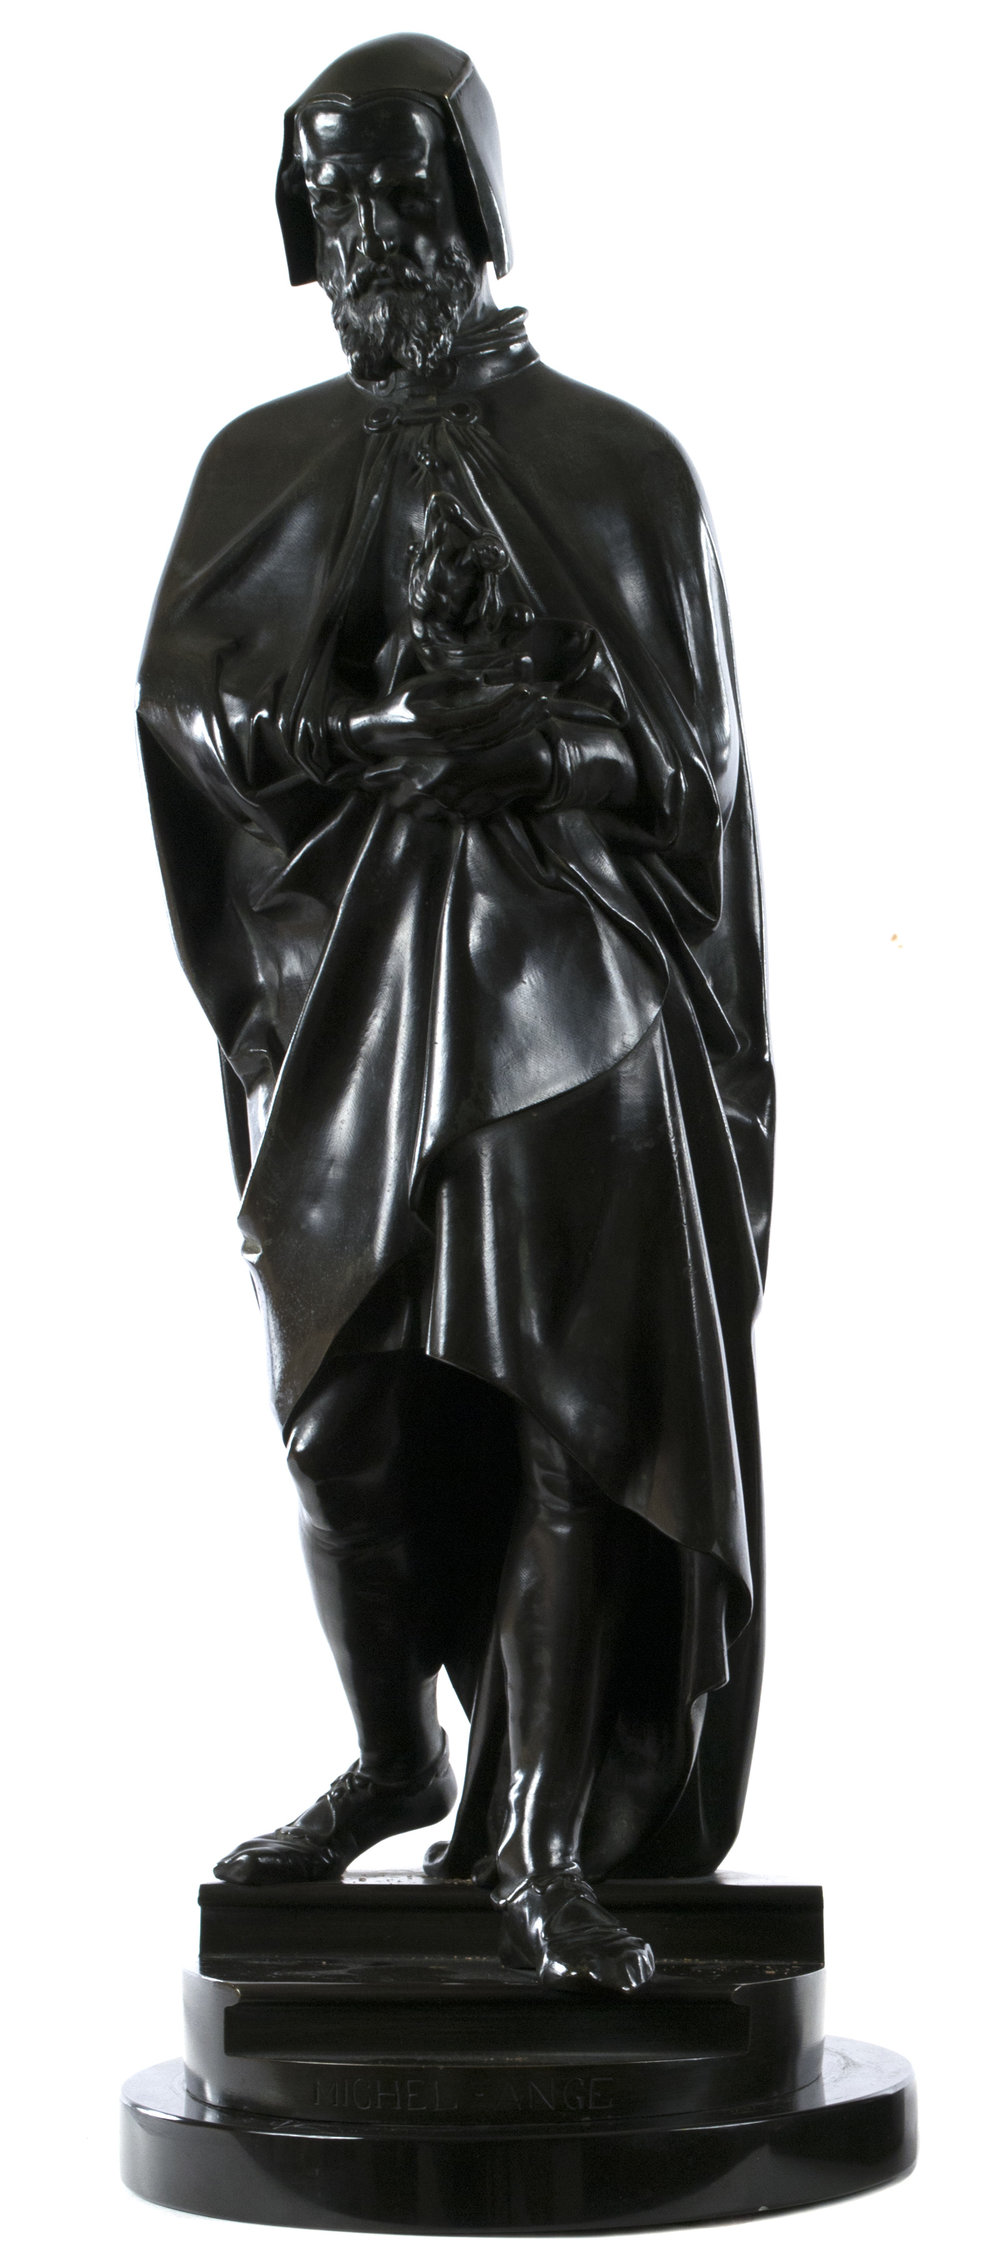 Albert-Ernest Carrier-Belleuse (French, 1824-1887) Michelangelo  /  Bronze  /  21 3/4 × 8 × 8 (in)  /  Date of Creation: 1855